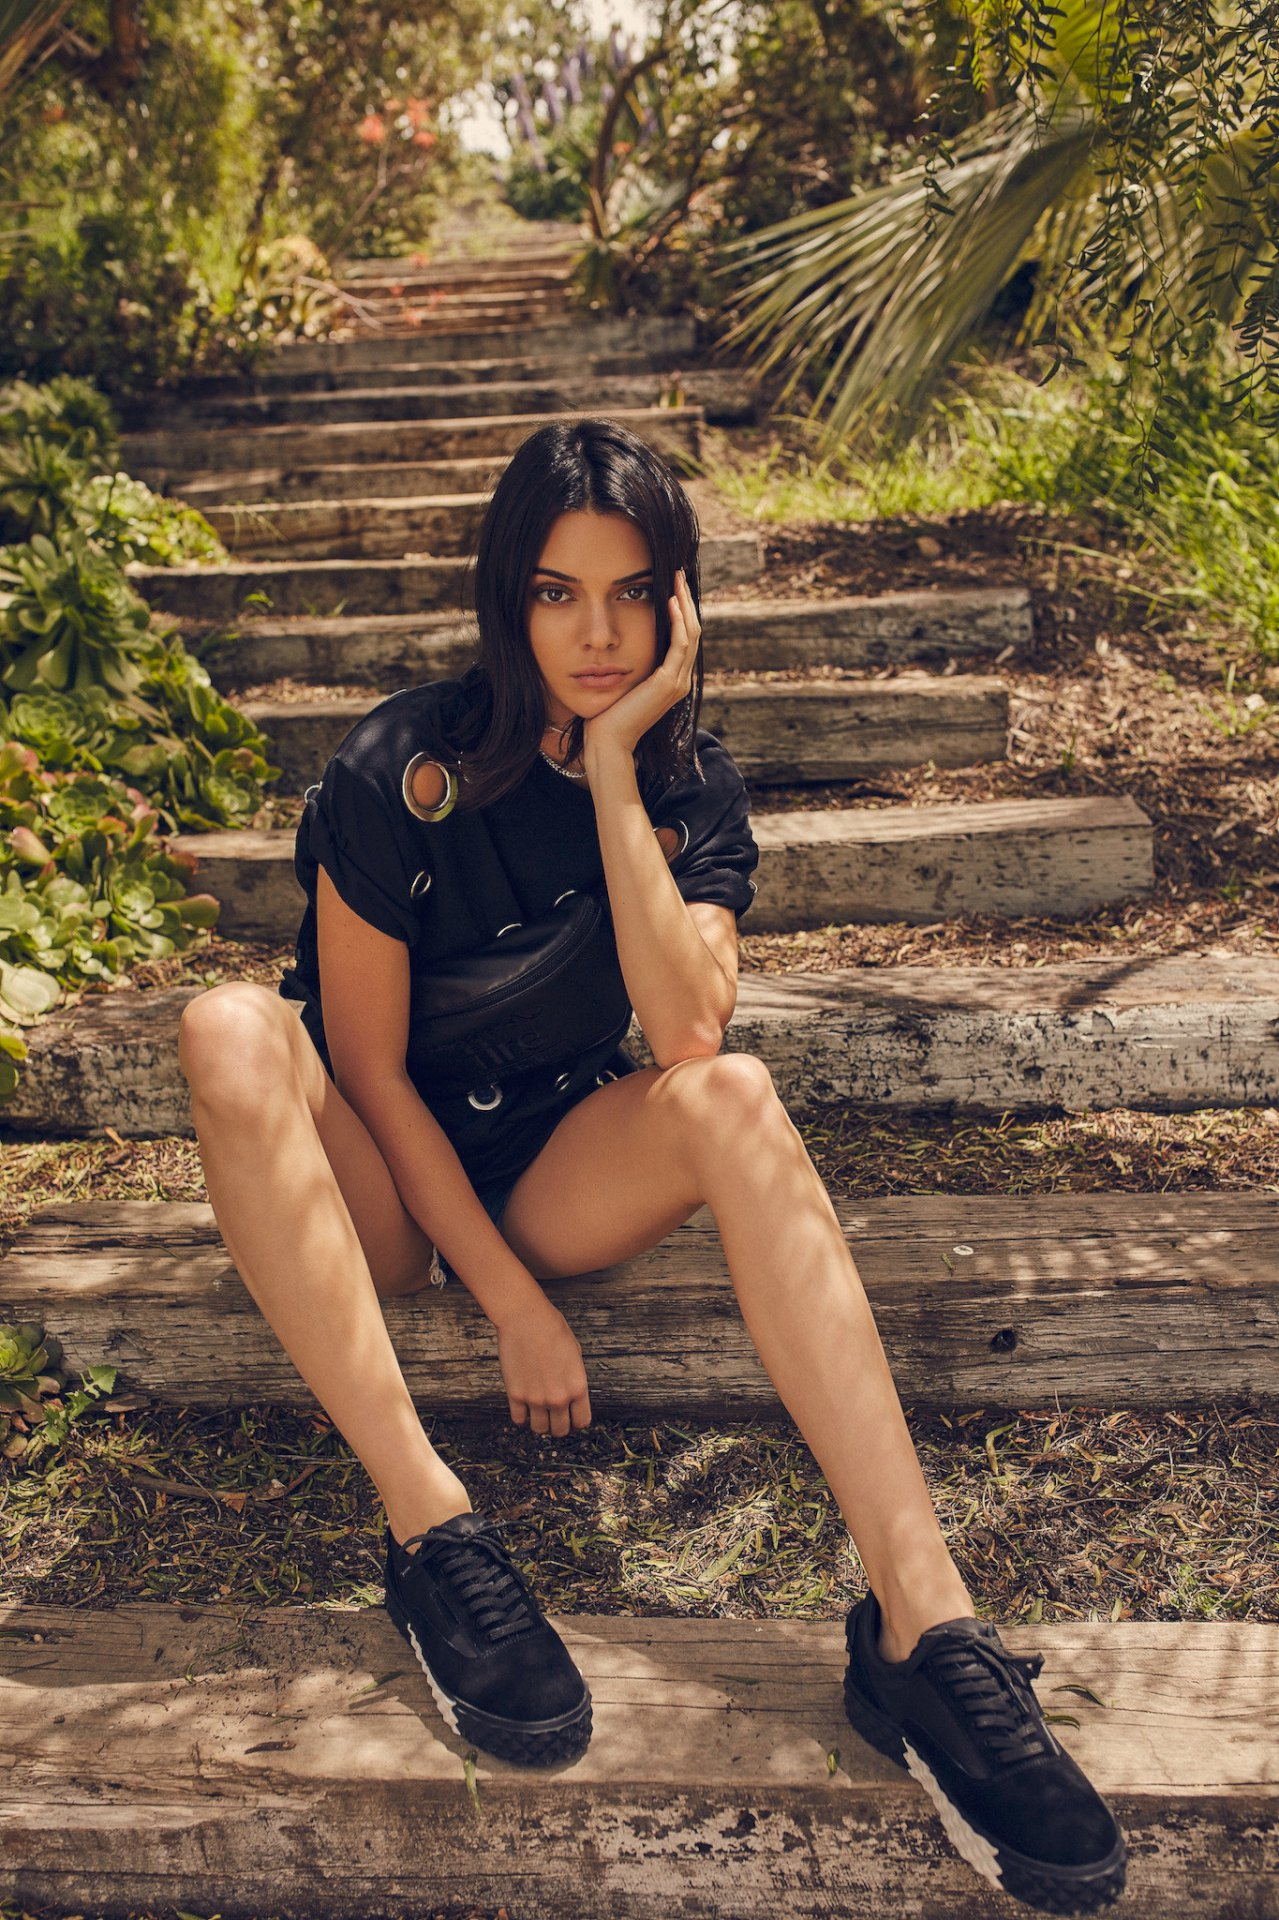 kendall lesbian personals Kendall jenner discussed her controversial 2017 pepsi advert with  kendall  jenner has opened up about rumours she is a lesbian in a.